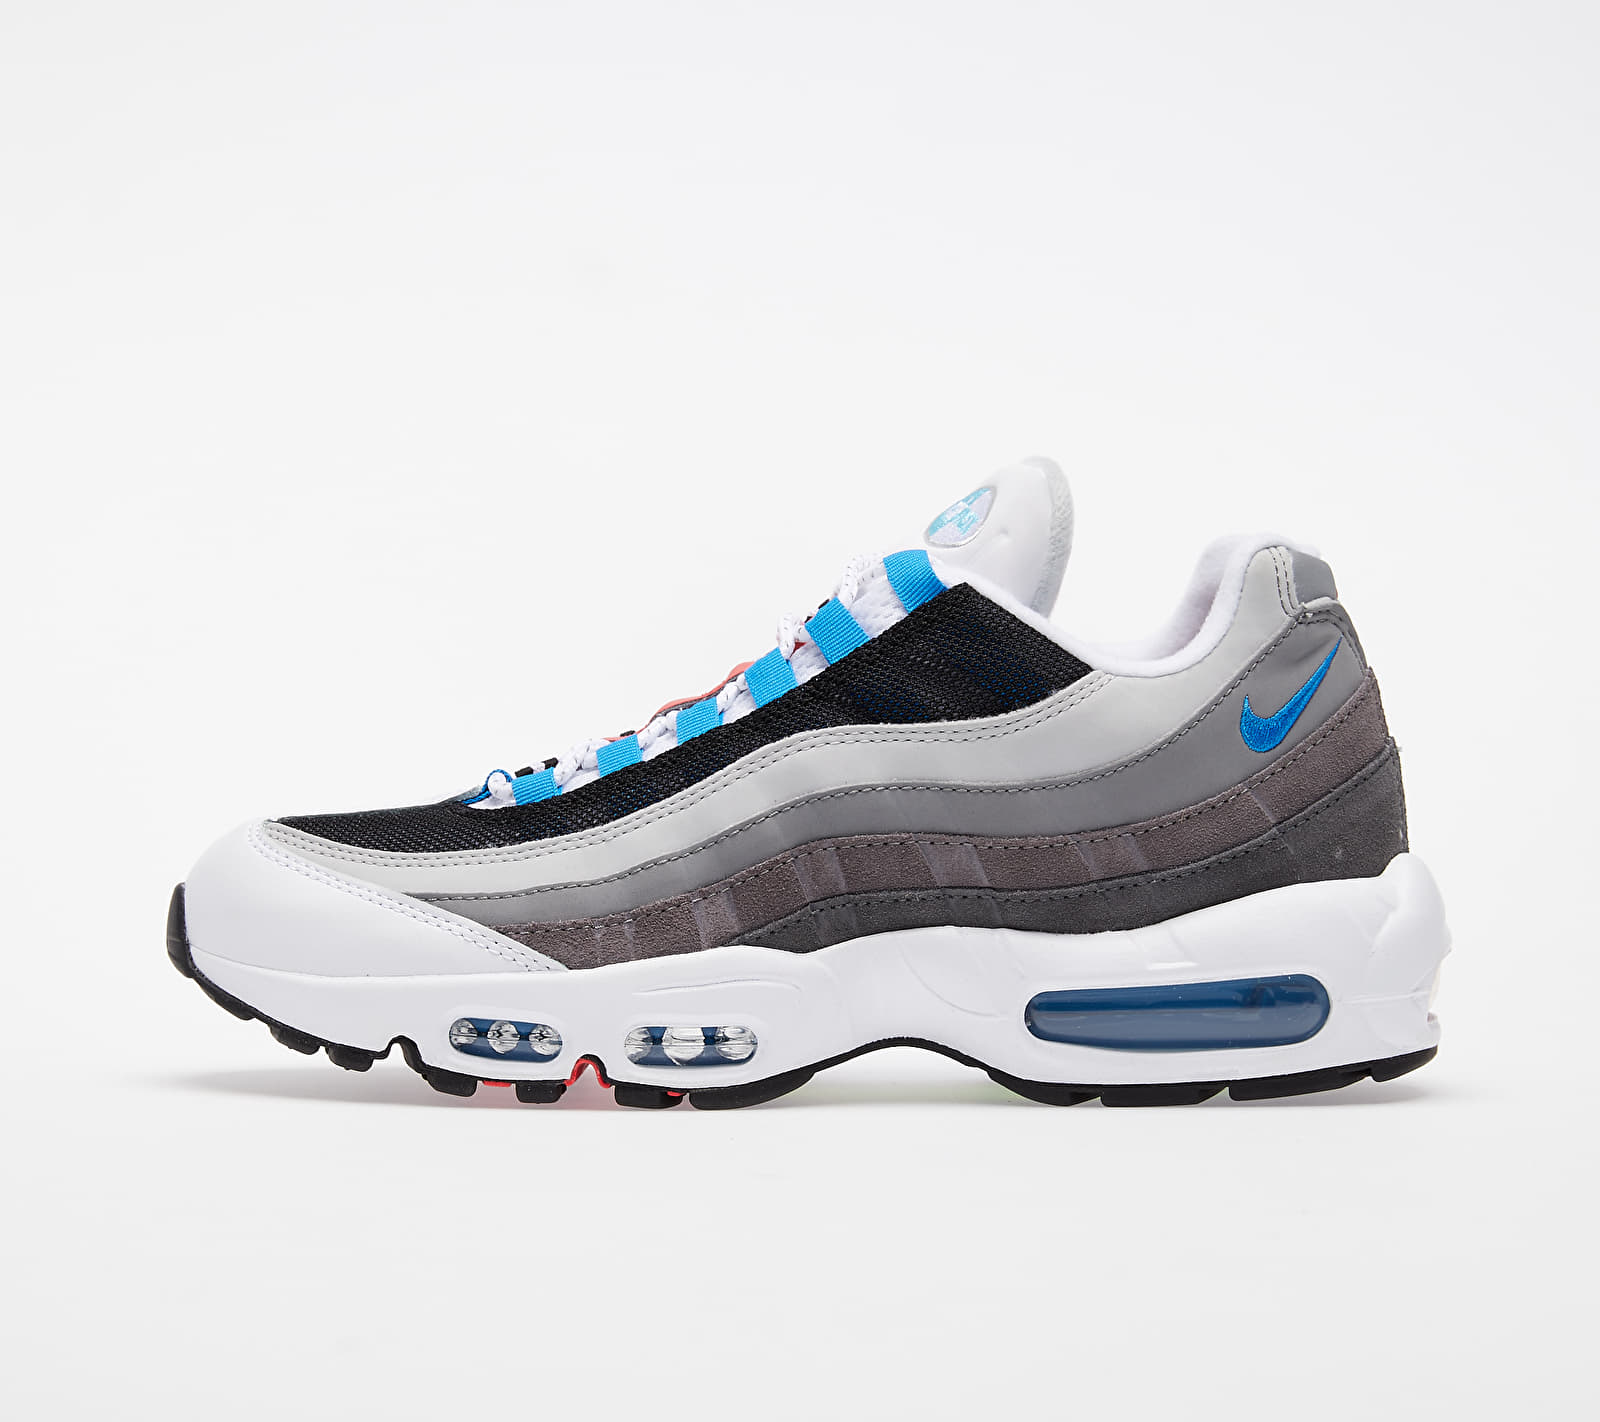 Nike Air Max 95 QS Black/ Multi-Color-Gunsmoke-Iron Grey EUR 41